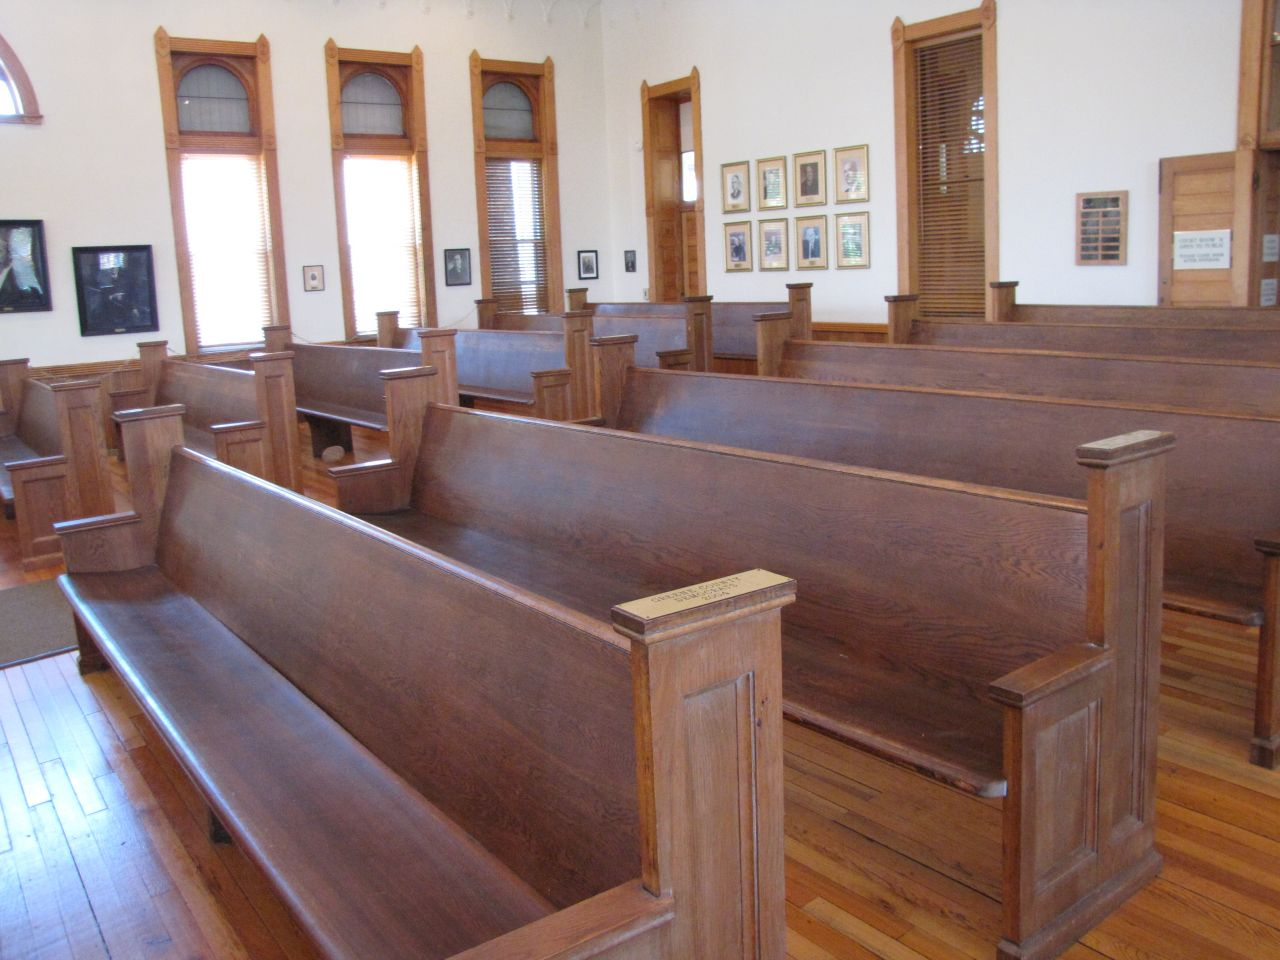 The benches were salvaged from a nearby church that happened to be closing.